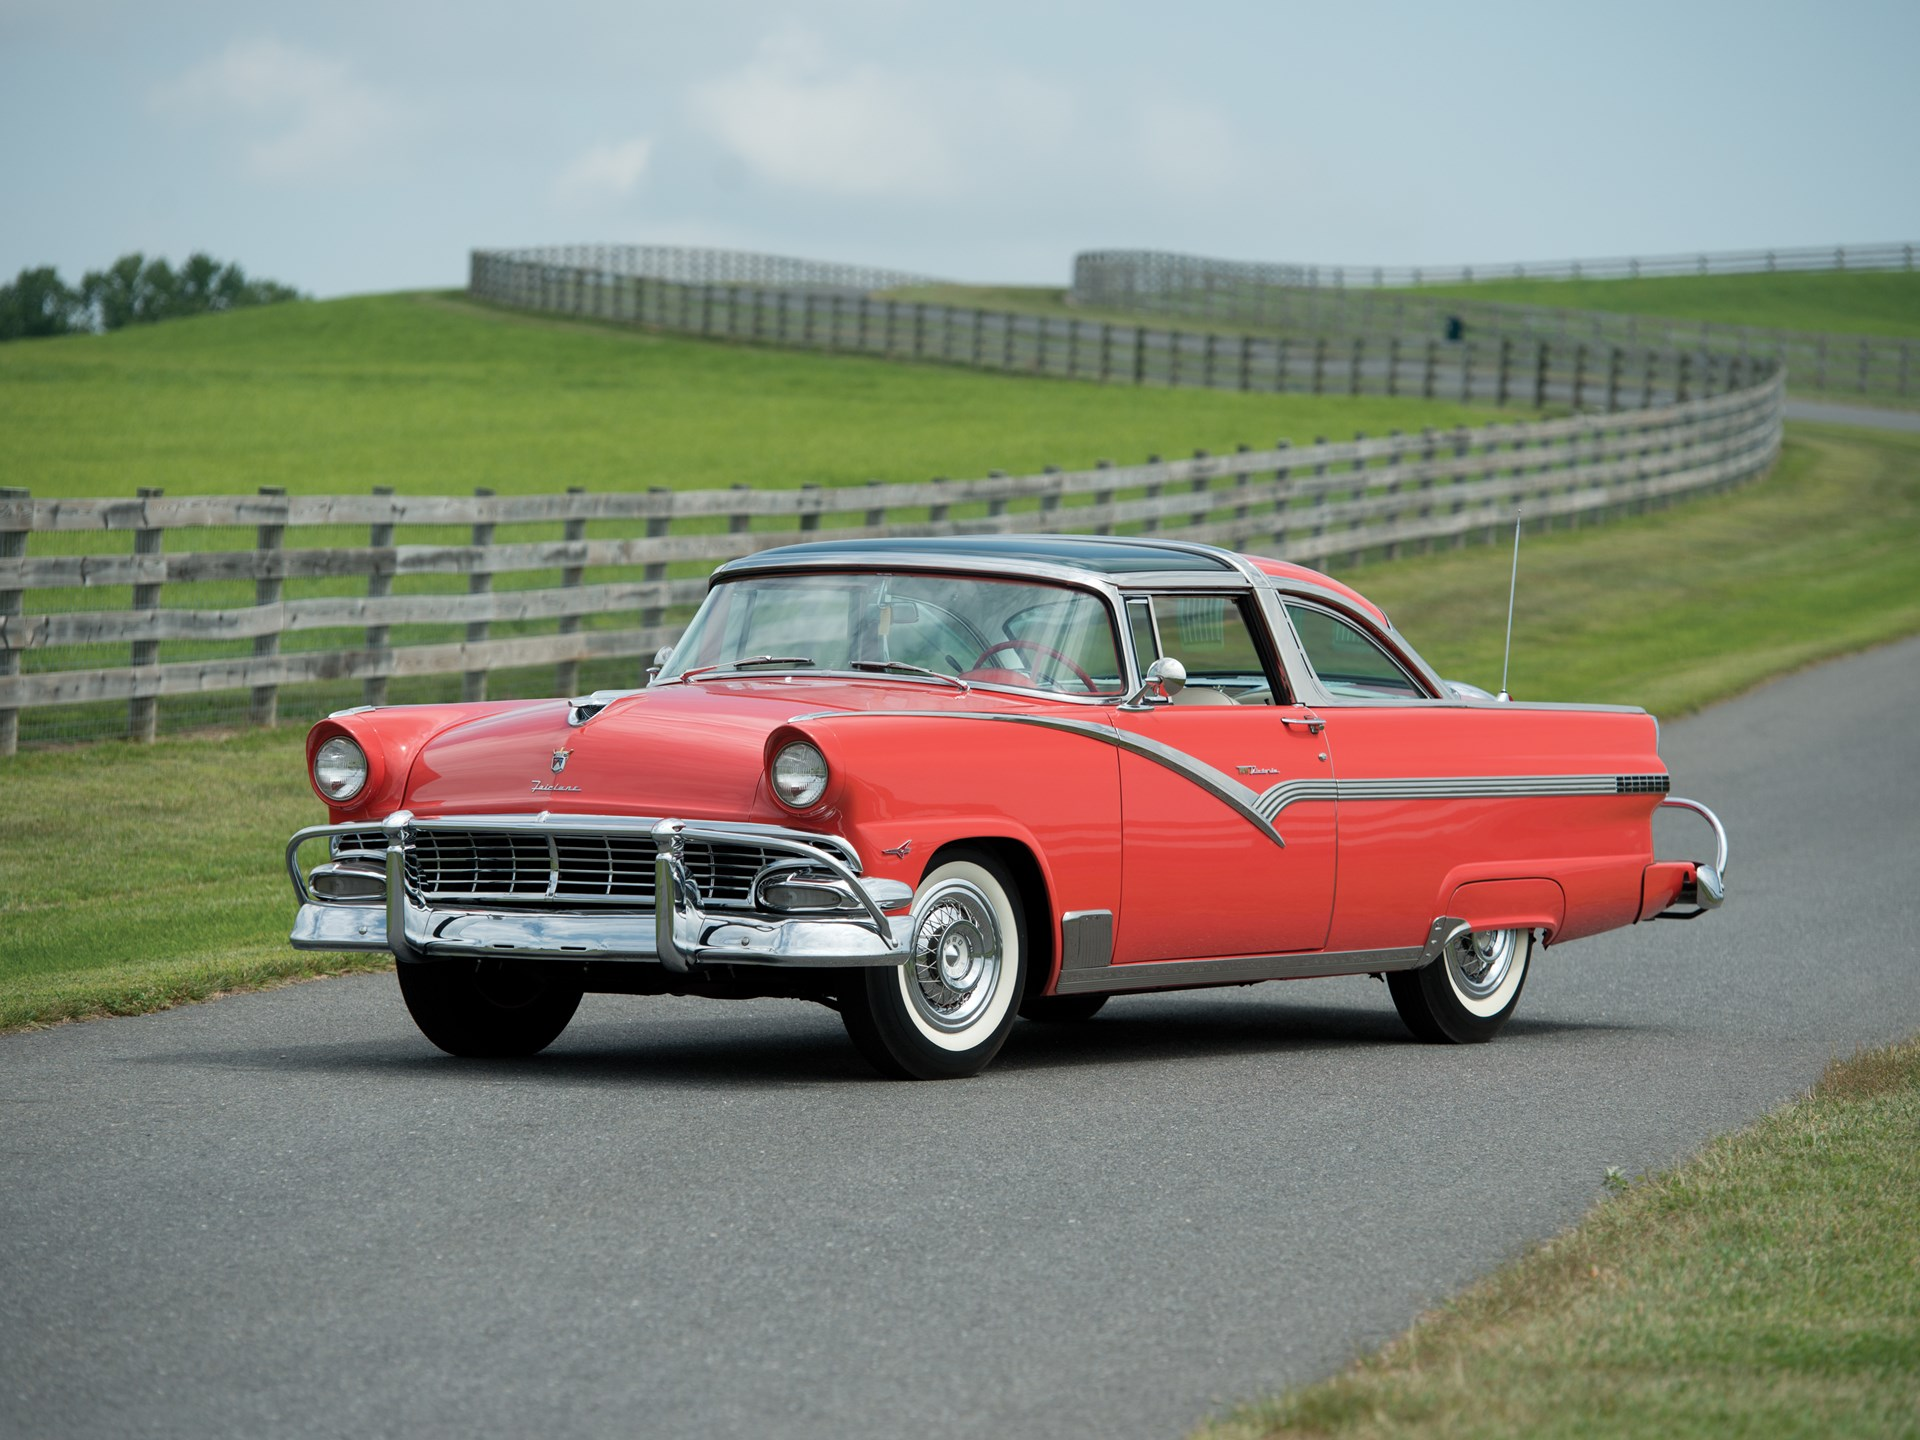 1956 Ford Fairlane Crown Victoria Skyliner 'Glass Top'